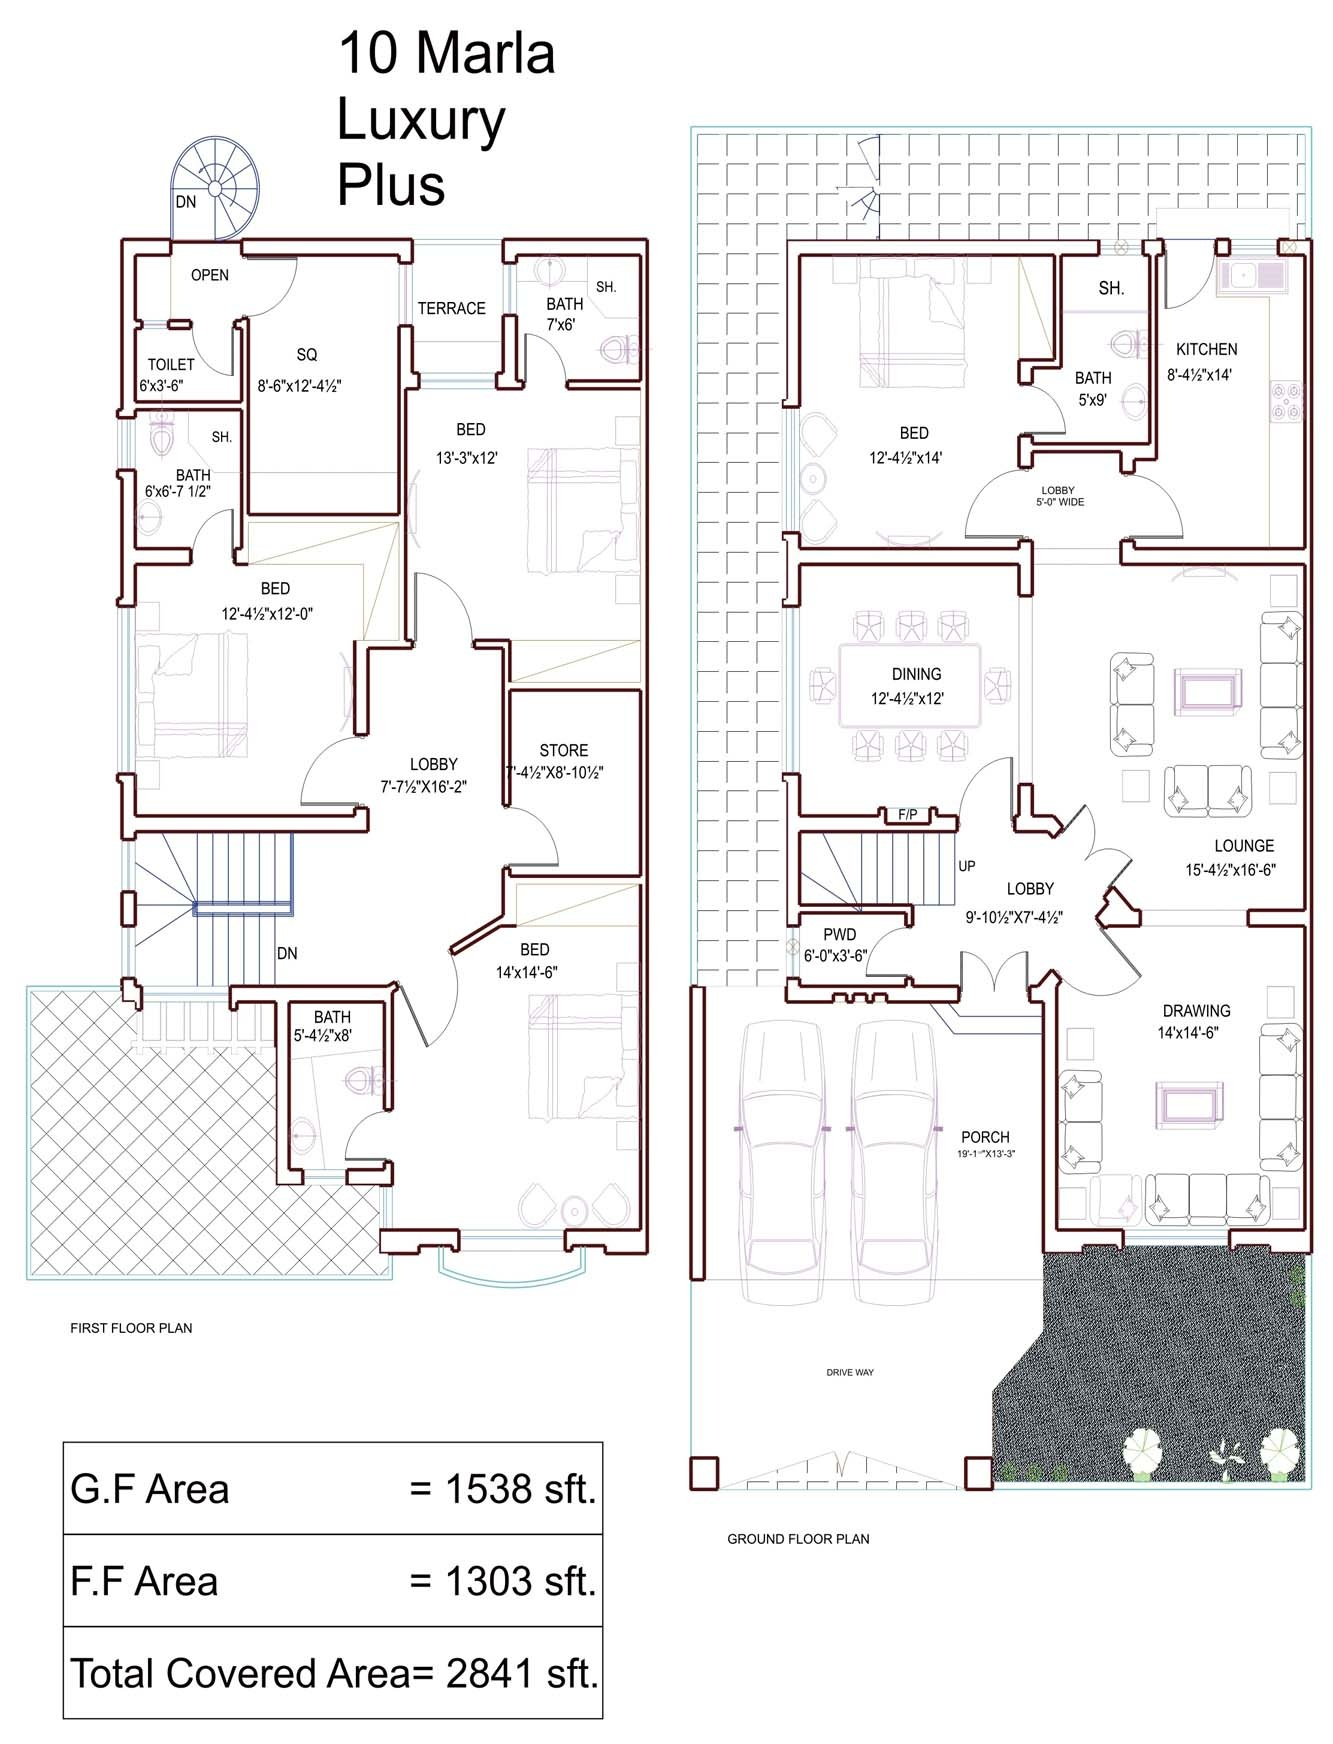 10 marla house plans civil engineers pk House map online free